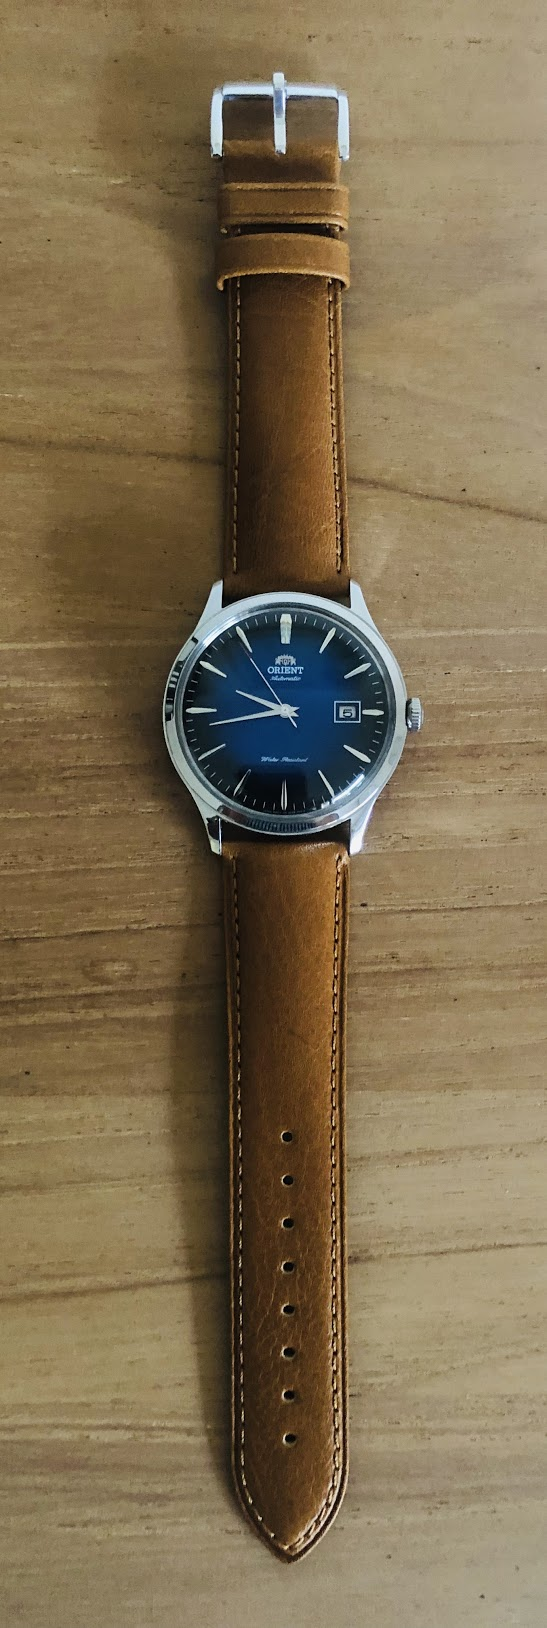 creationwatches - orient bambino V4 - Page 23 Img_1014